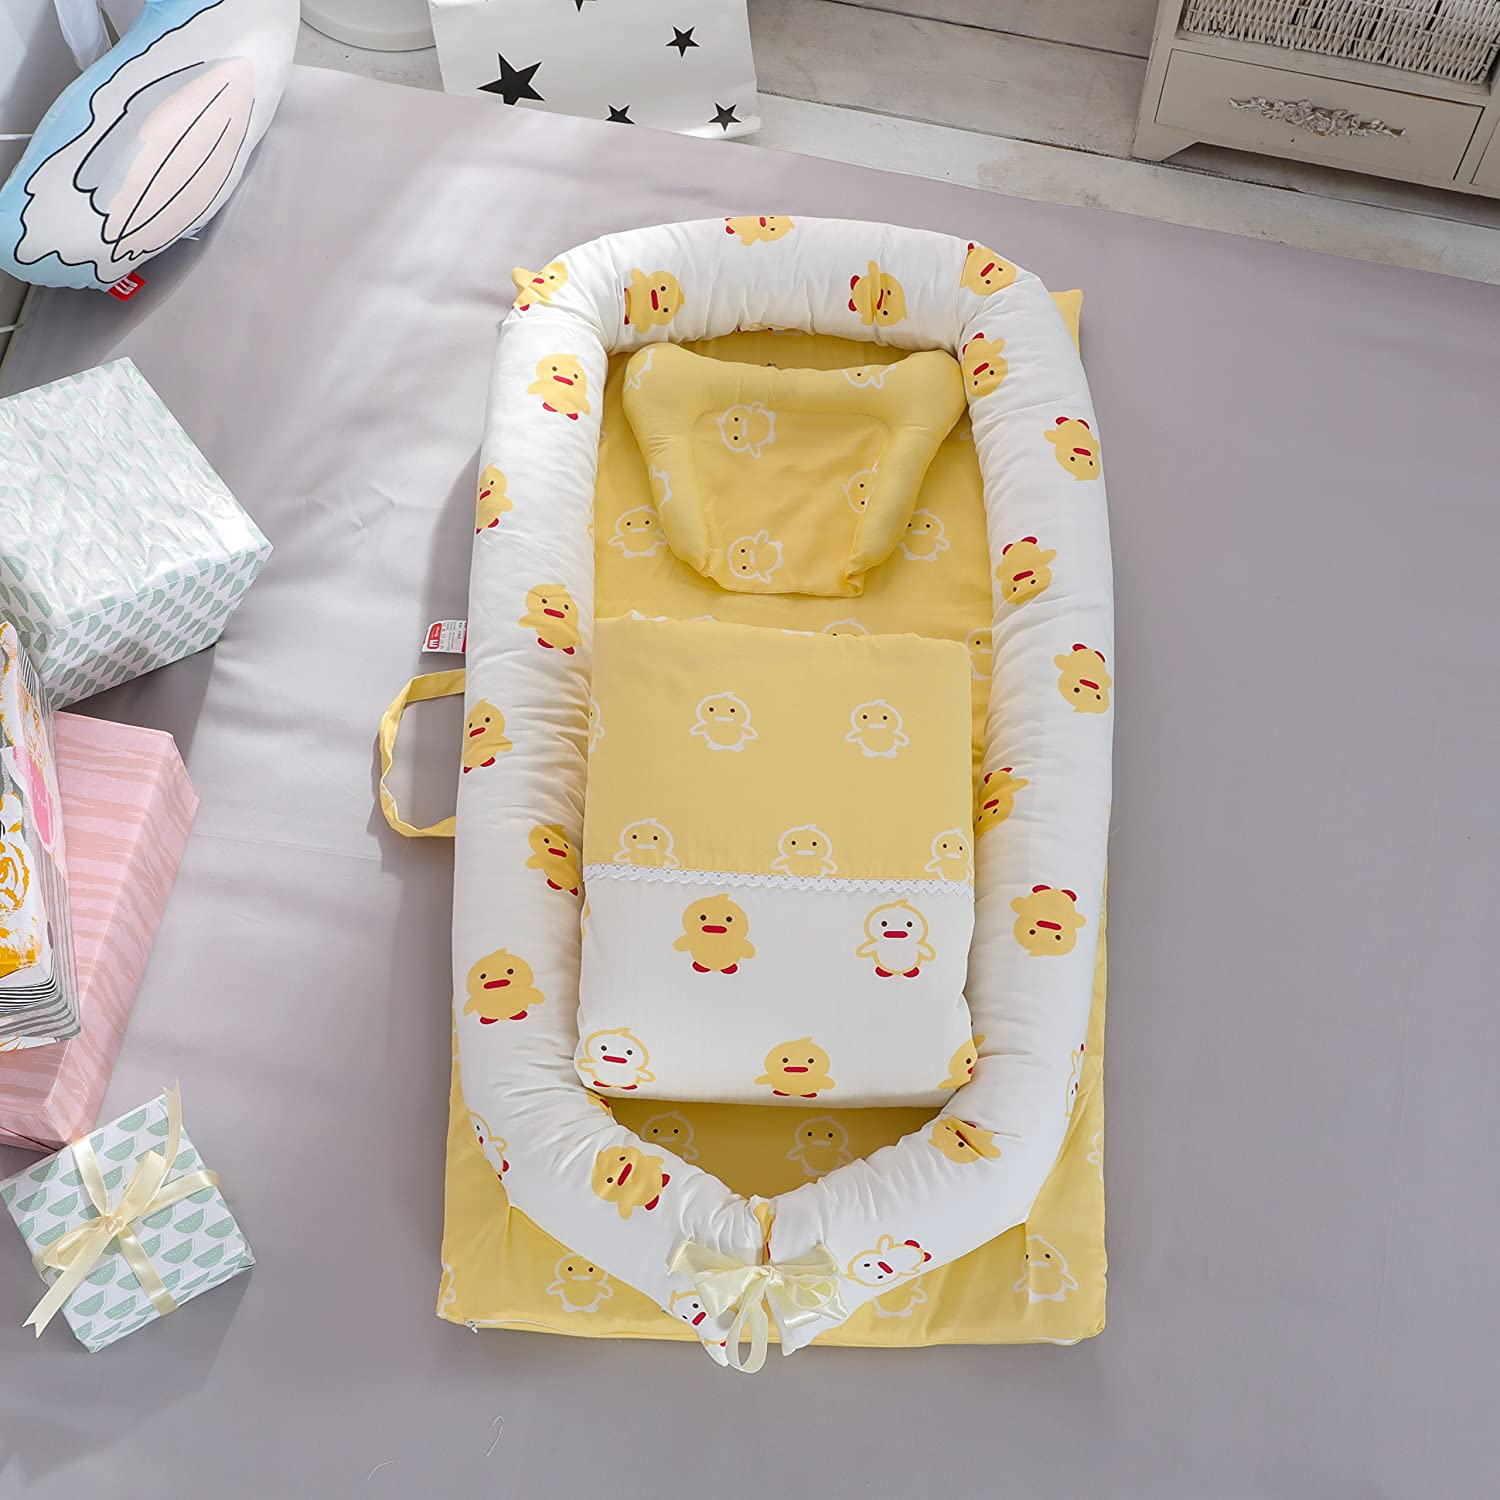 DOLDOA Baby Lounger for Bed,Portable Baby Nest for Newborn,100/% Cotton Newborn Portable Bassinet Crib,Breathable and Hypoallergenic Sleep Nest Newborn Lounger Pillow for Bedroom//Travel Camping